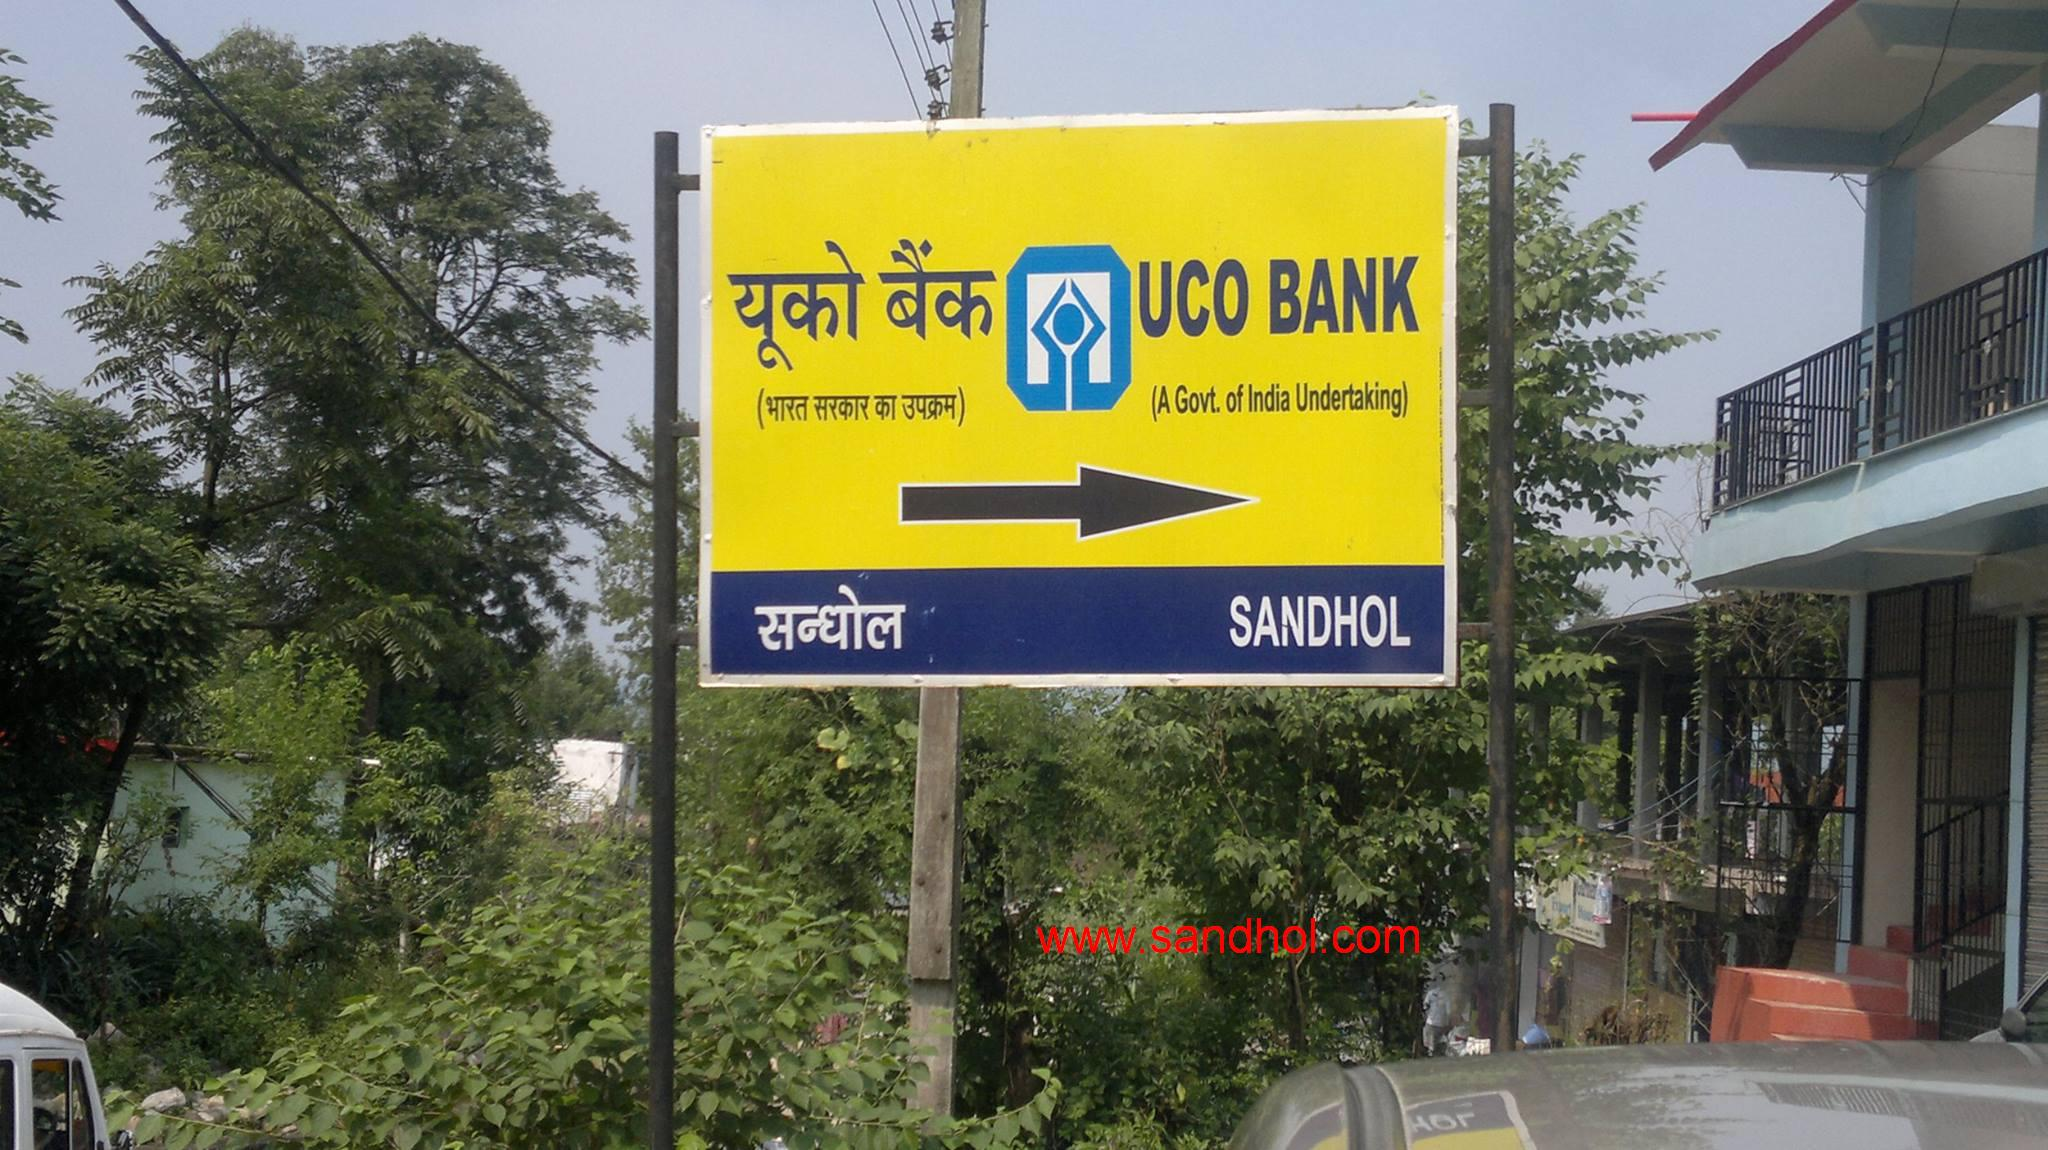 UCO Bank at Sandhole